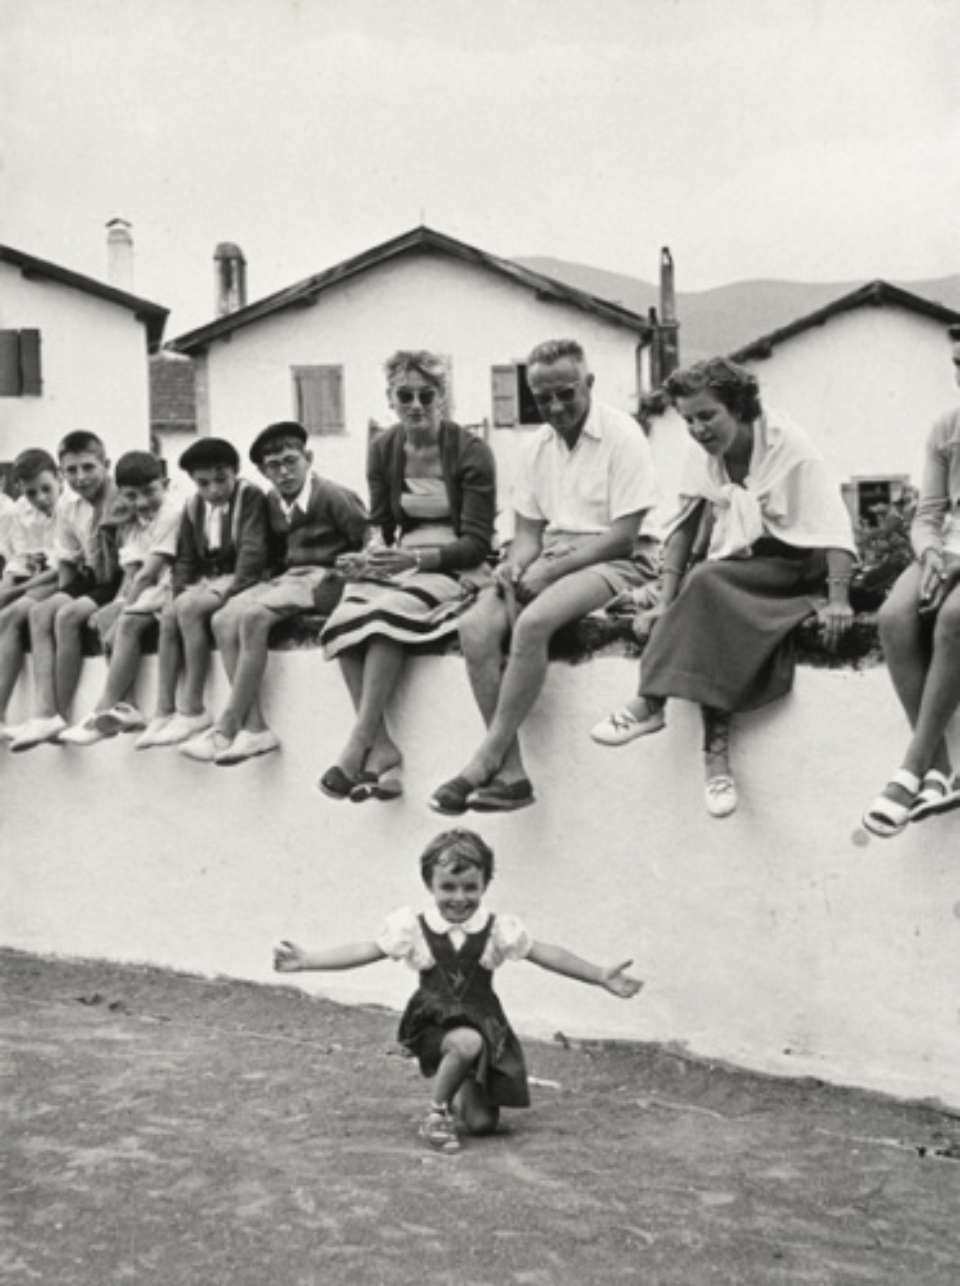 Robert Capa: Village Festival Basque Country, France, 1951